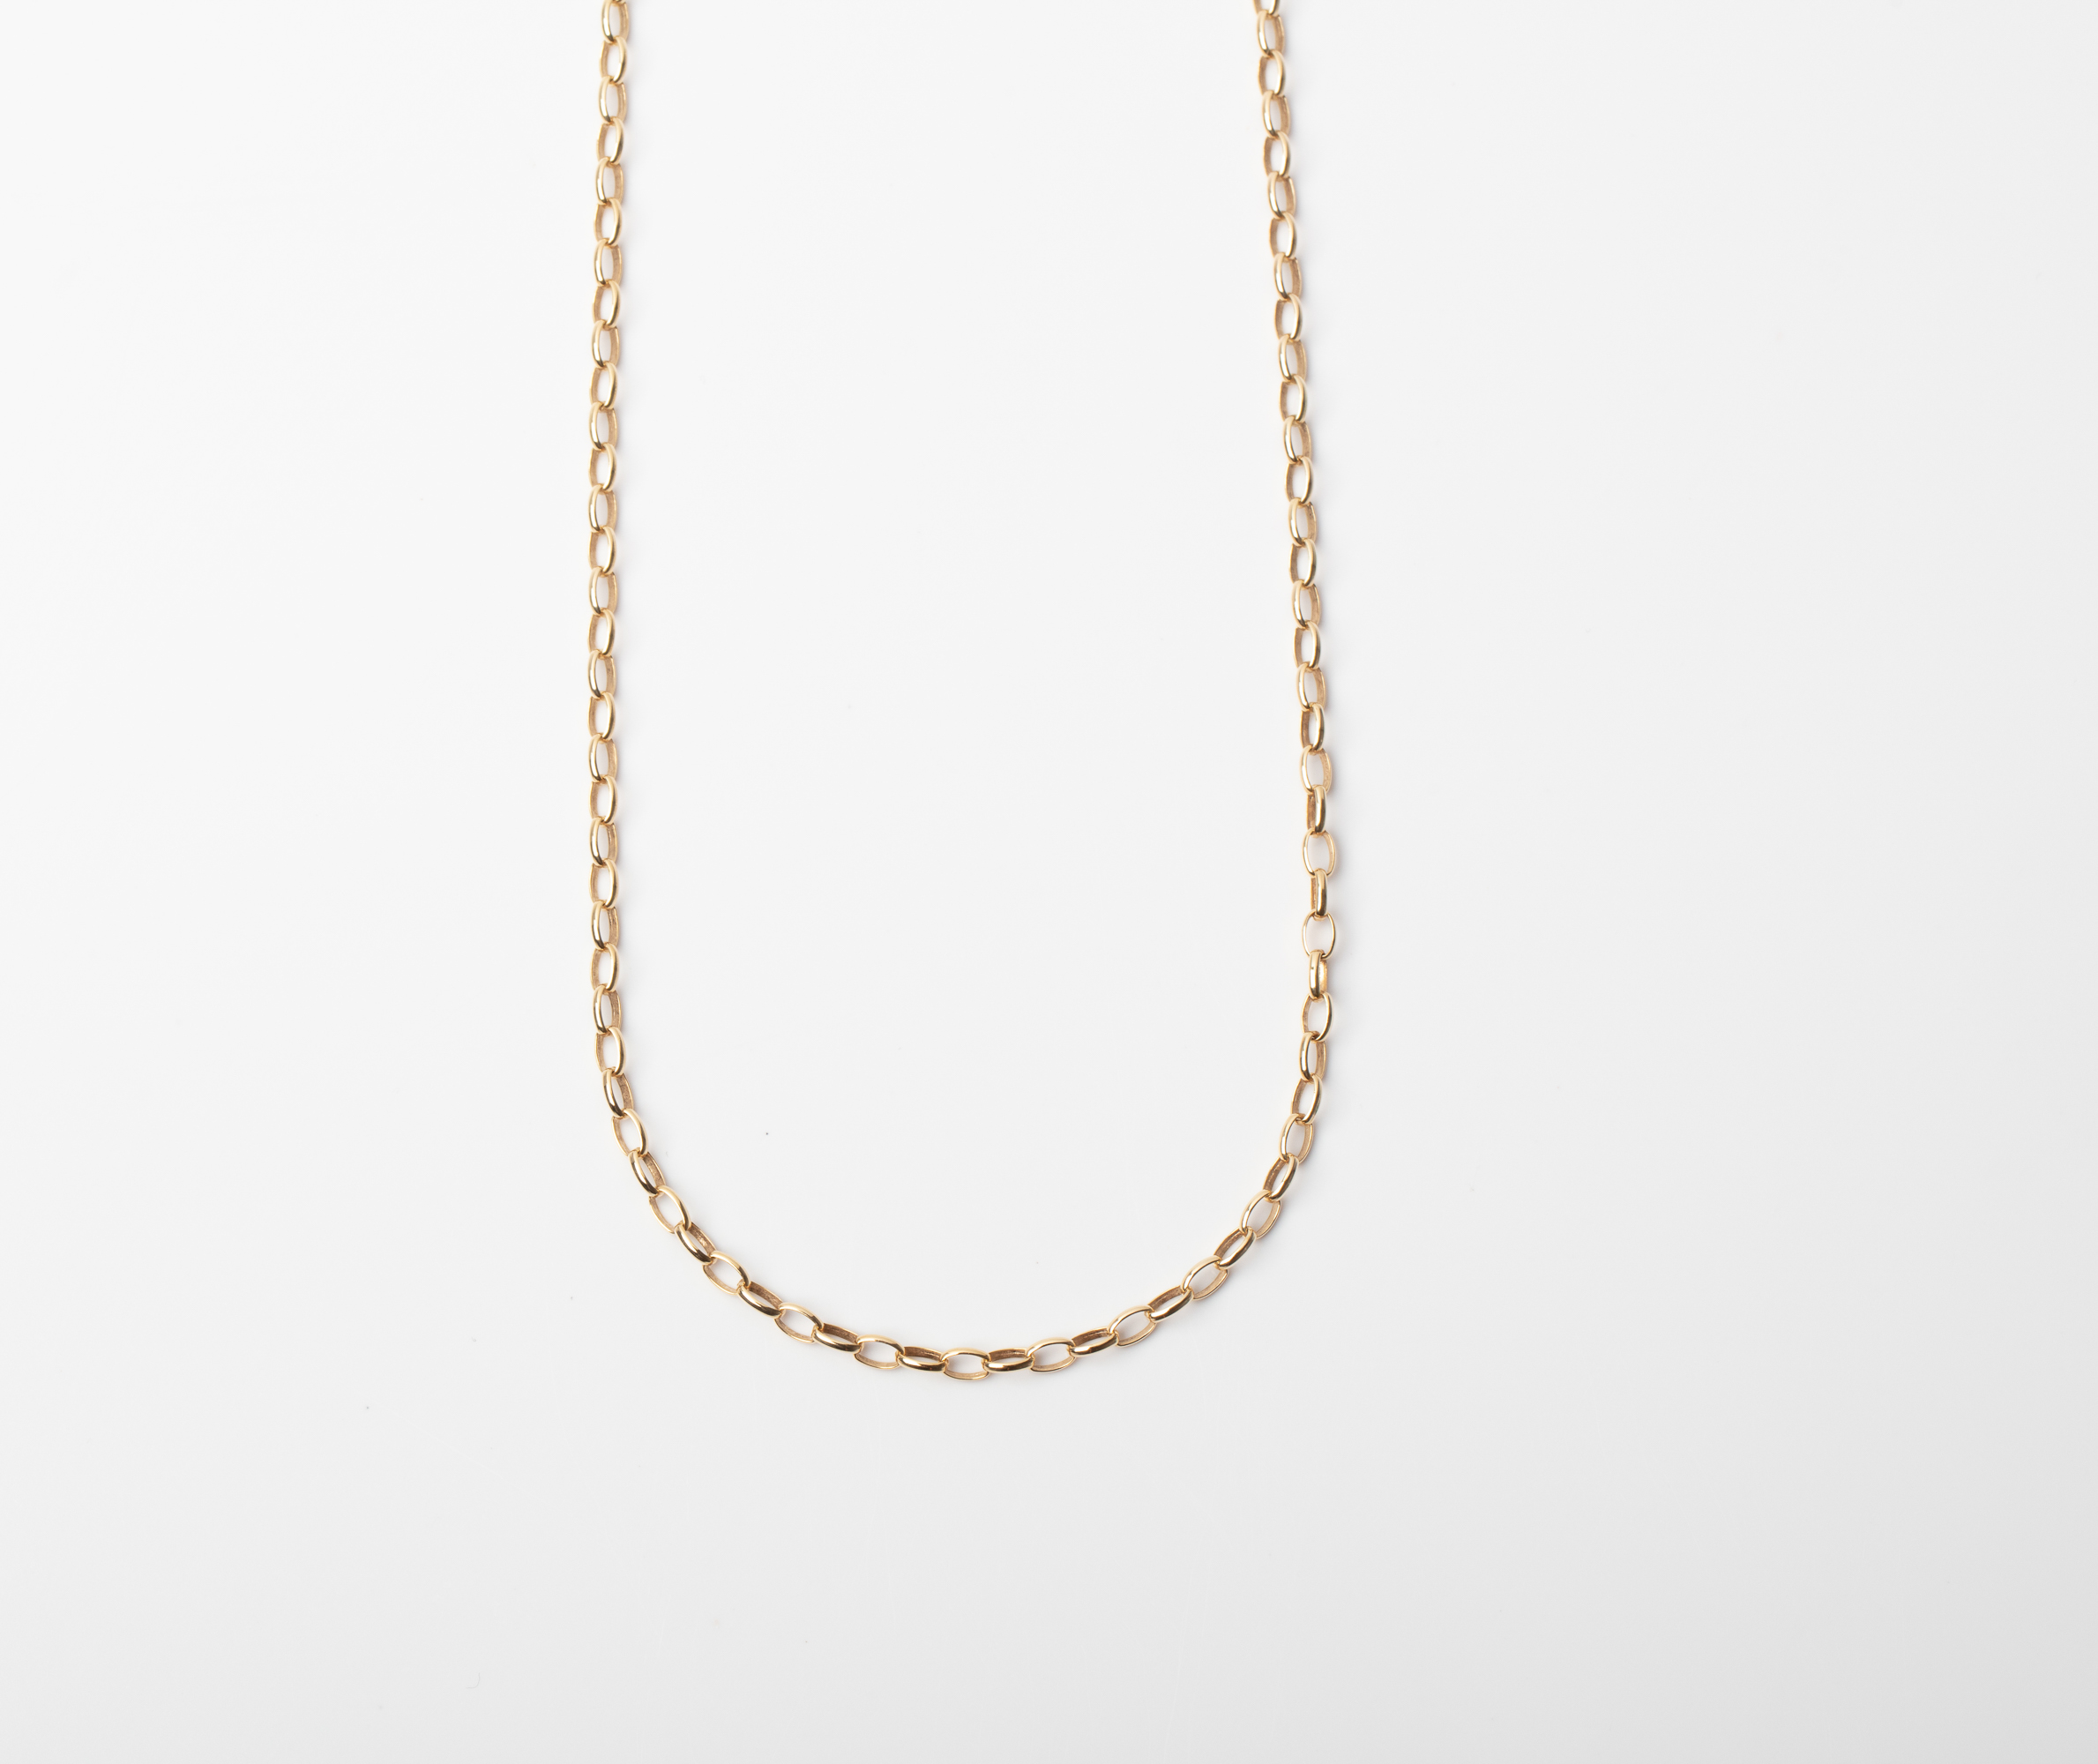 A 9CT GOLD AND SILVER BONDED OVAL LINKED CHAIN